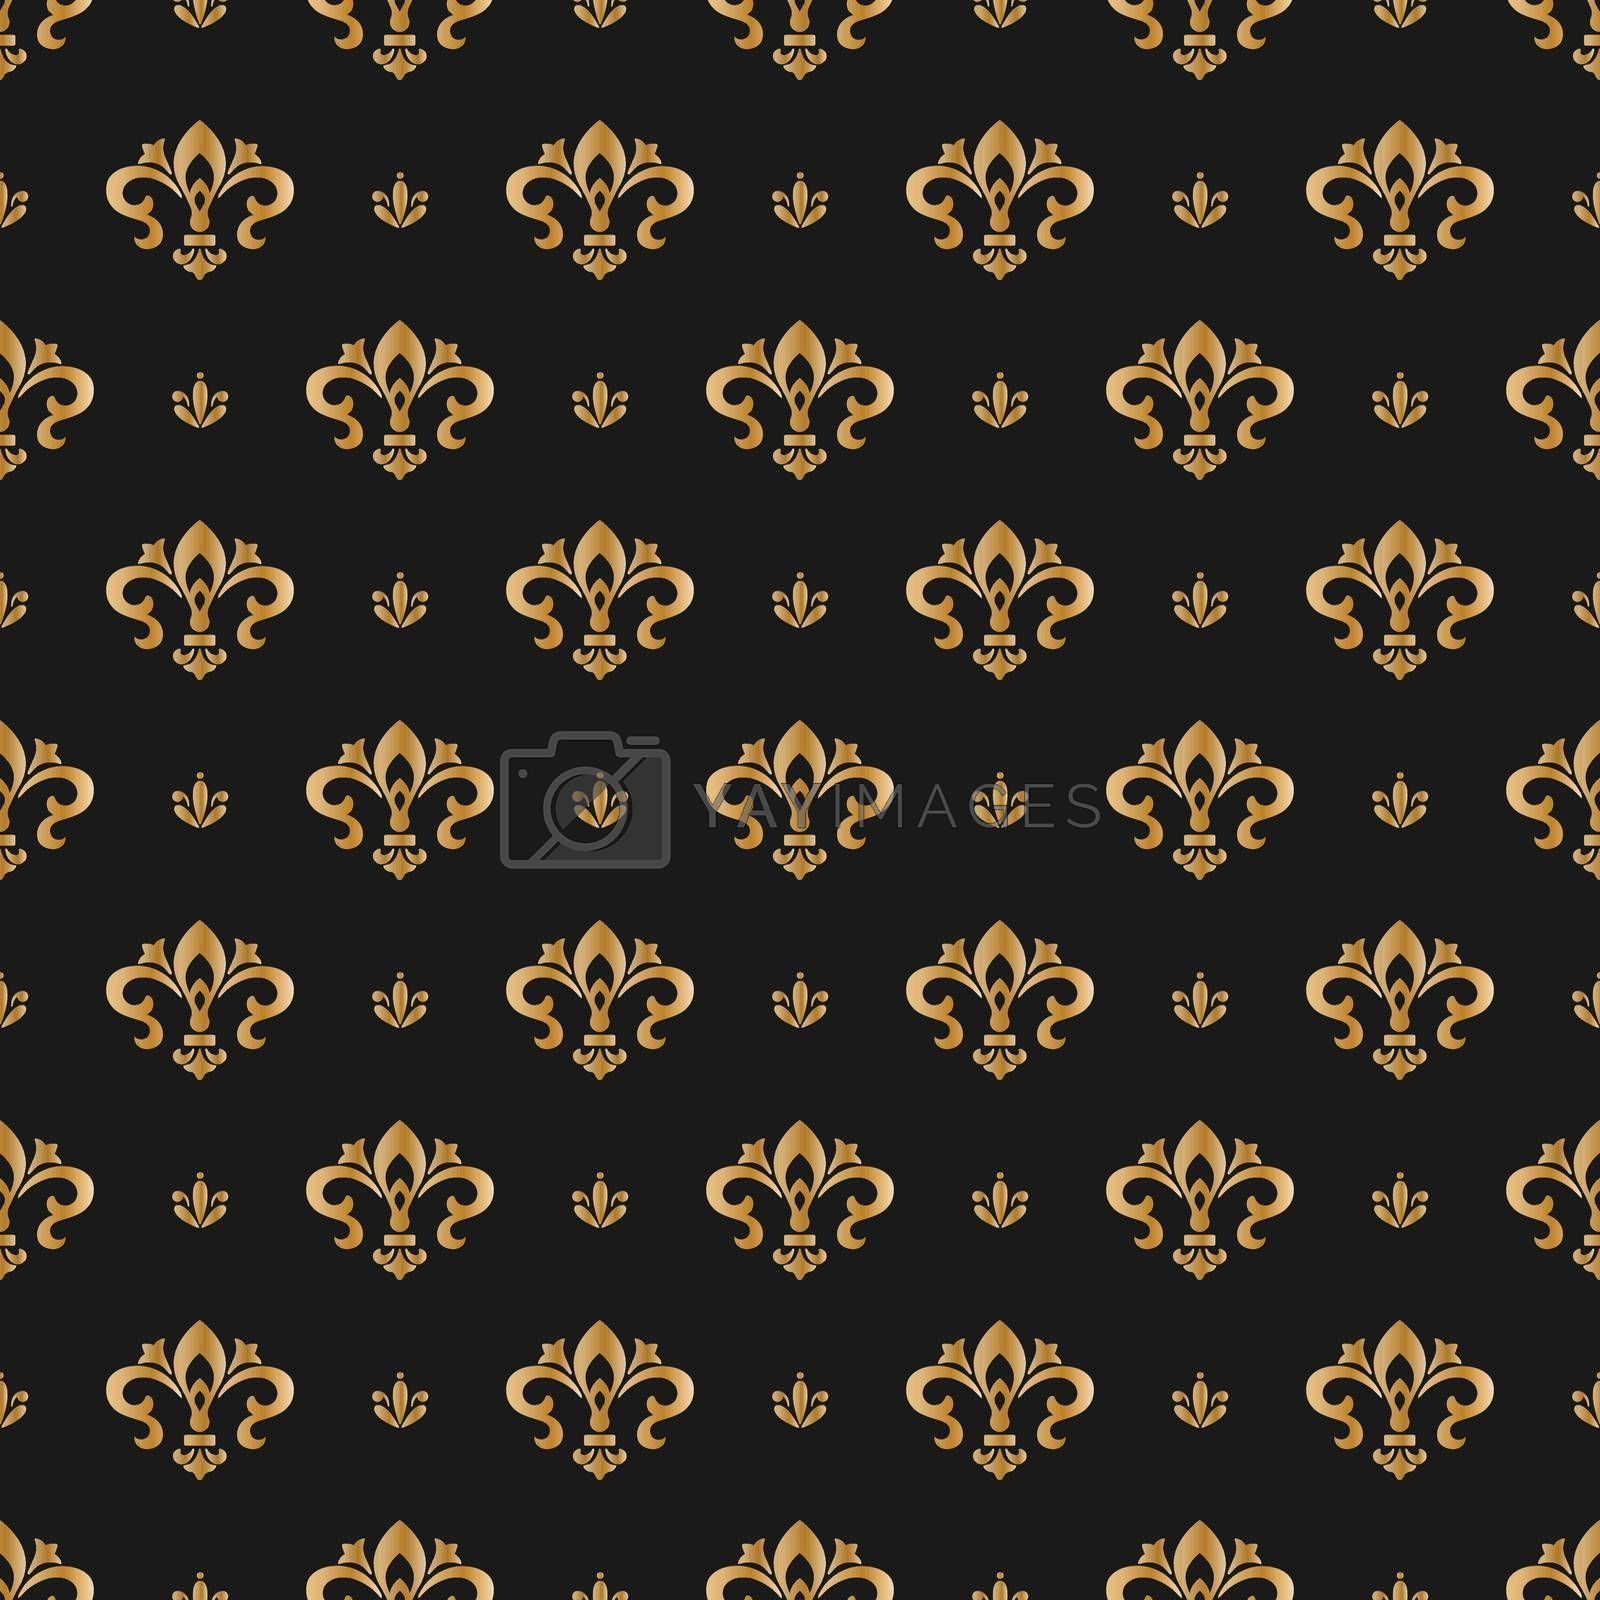 Seamless pattern of decorative elements, for texture, textiles and simple backgrounds. Vector illustration